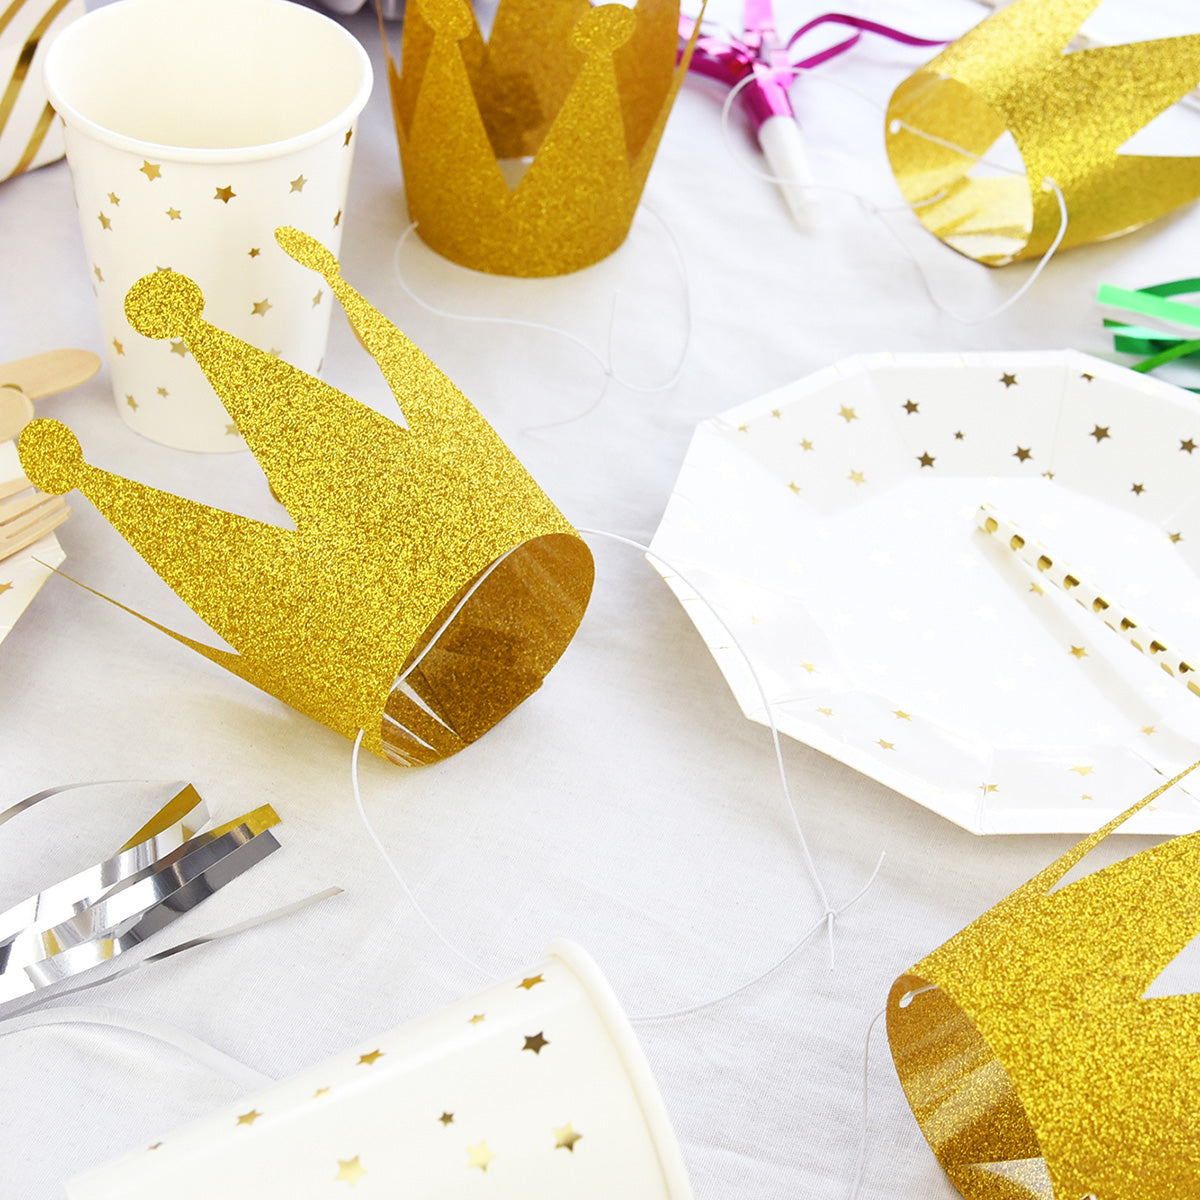 24 Golden Glittery (Princess + Prince) Crown Party Hats